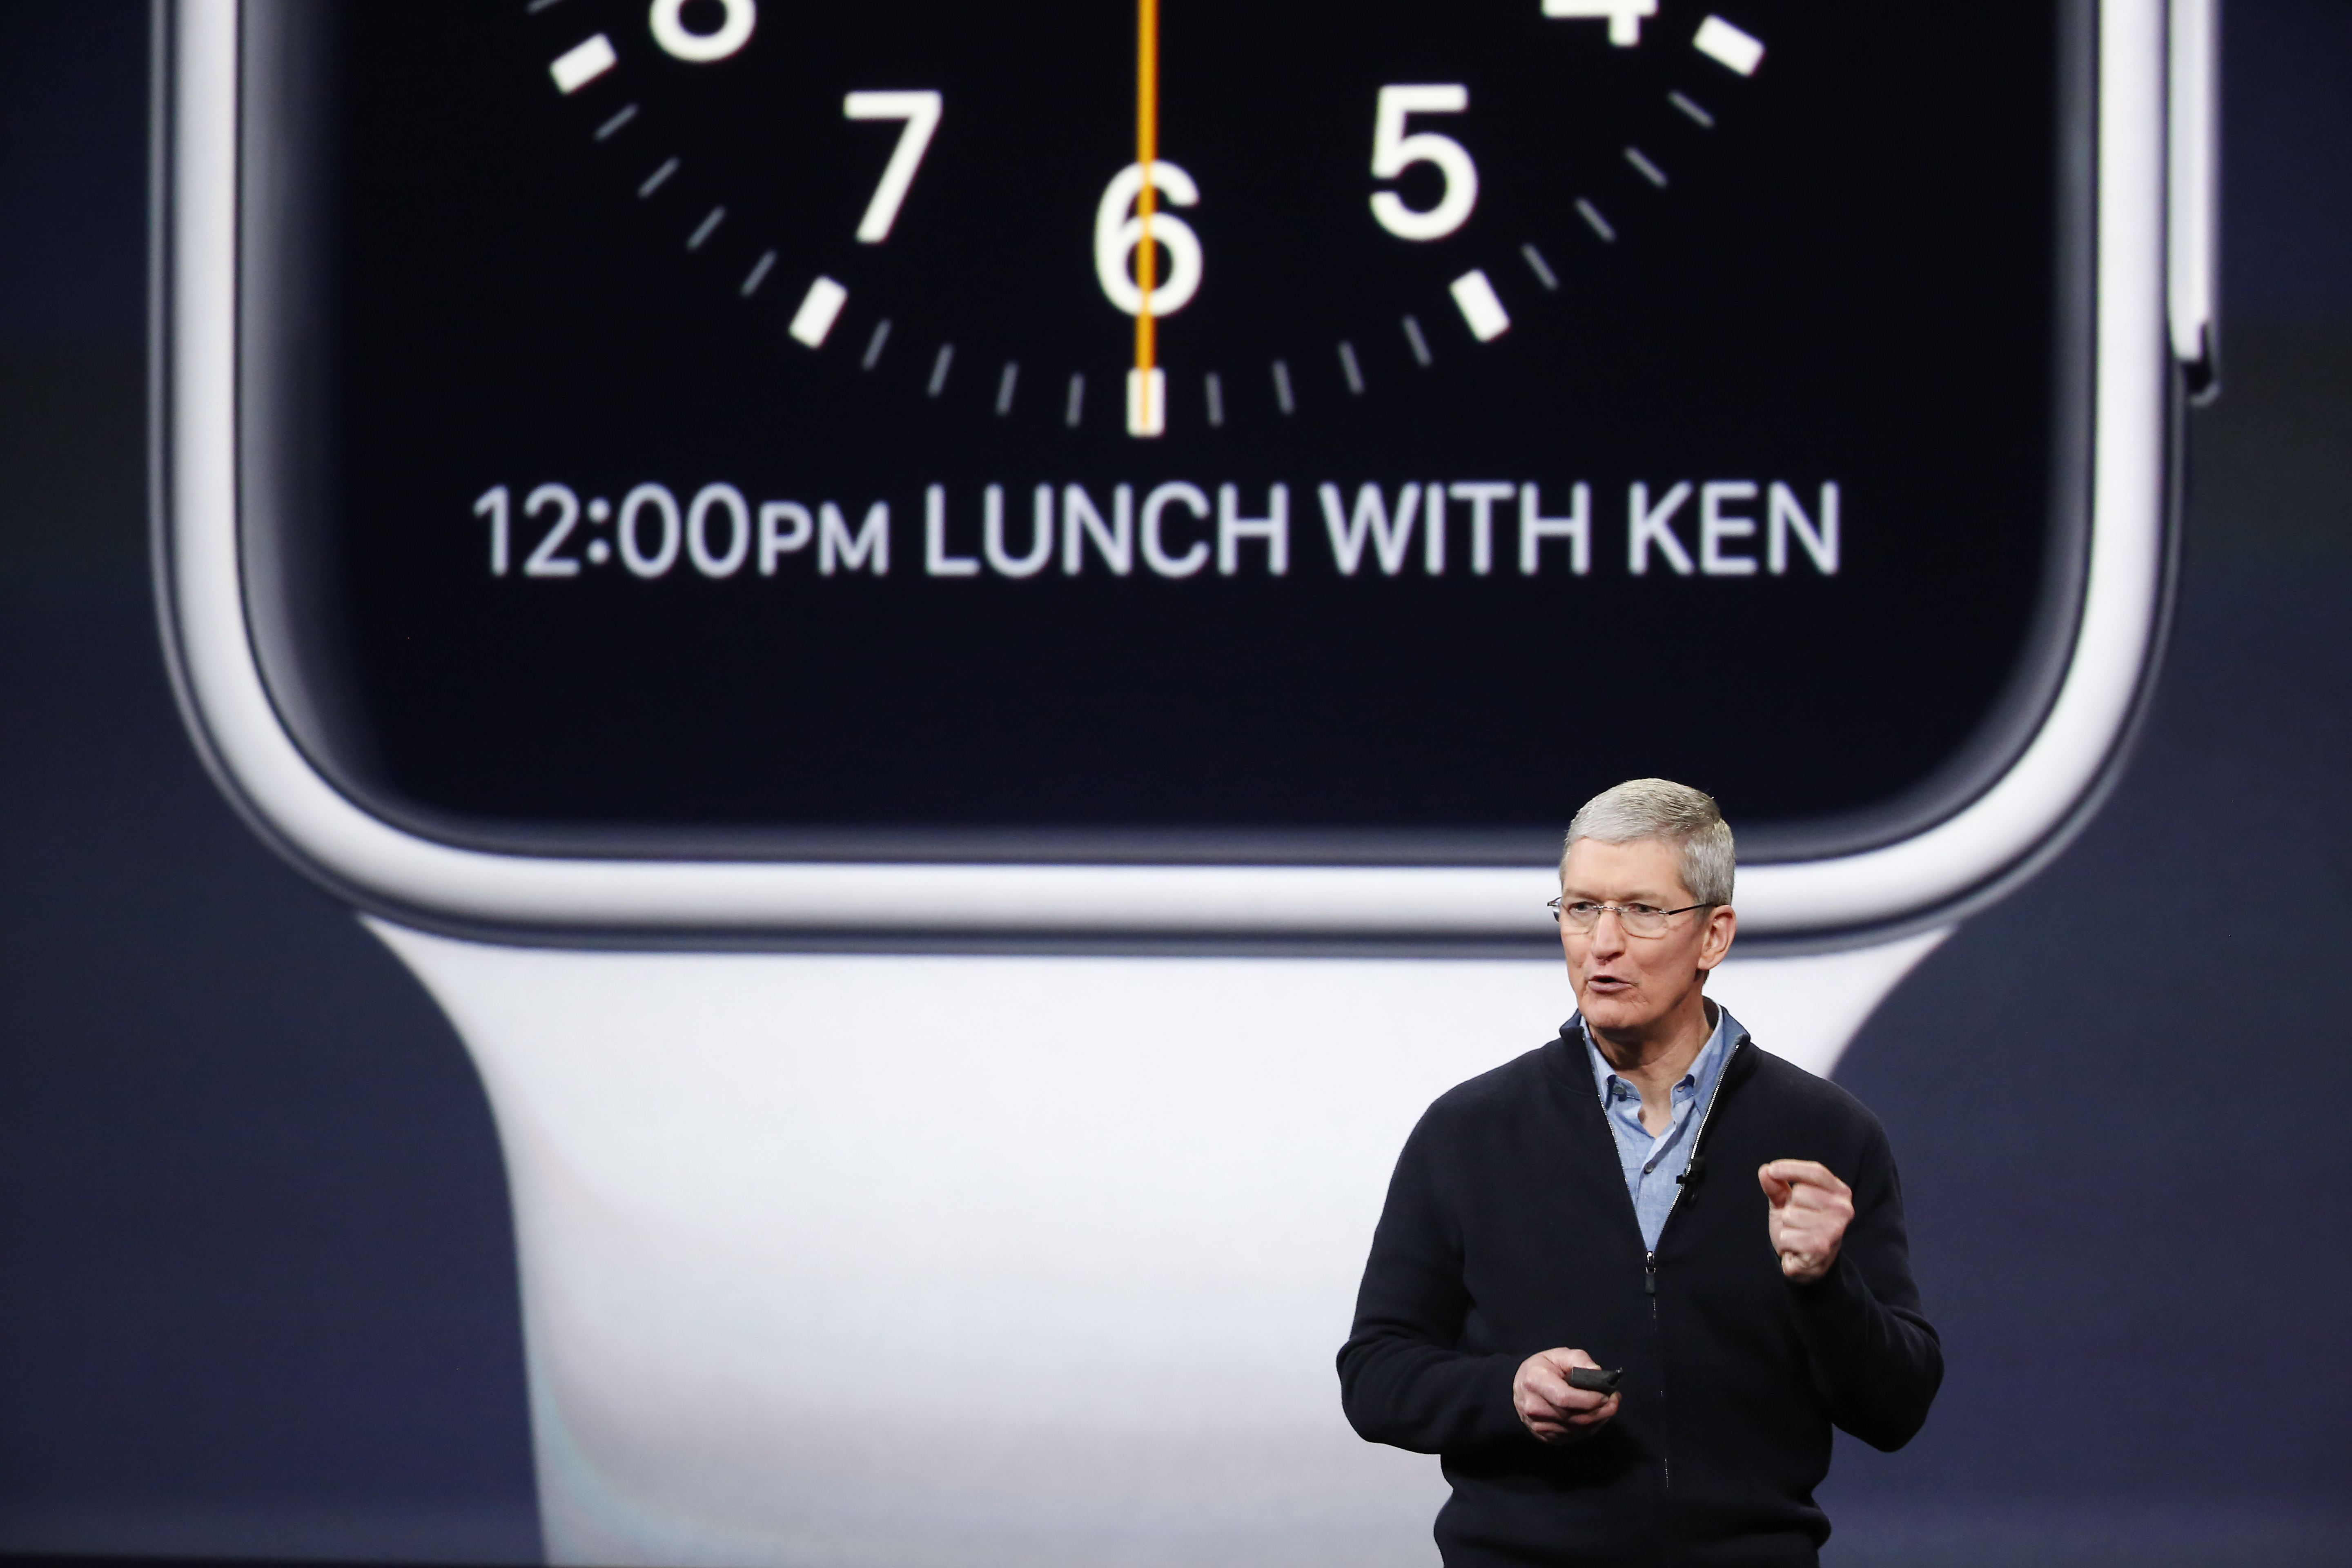 Apple CEO Tim Cook announces the Apple Watch during an Apple special event at the Yerba Buena Center for the Arts on March 9, 2015 in San Francisco, California.